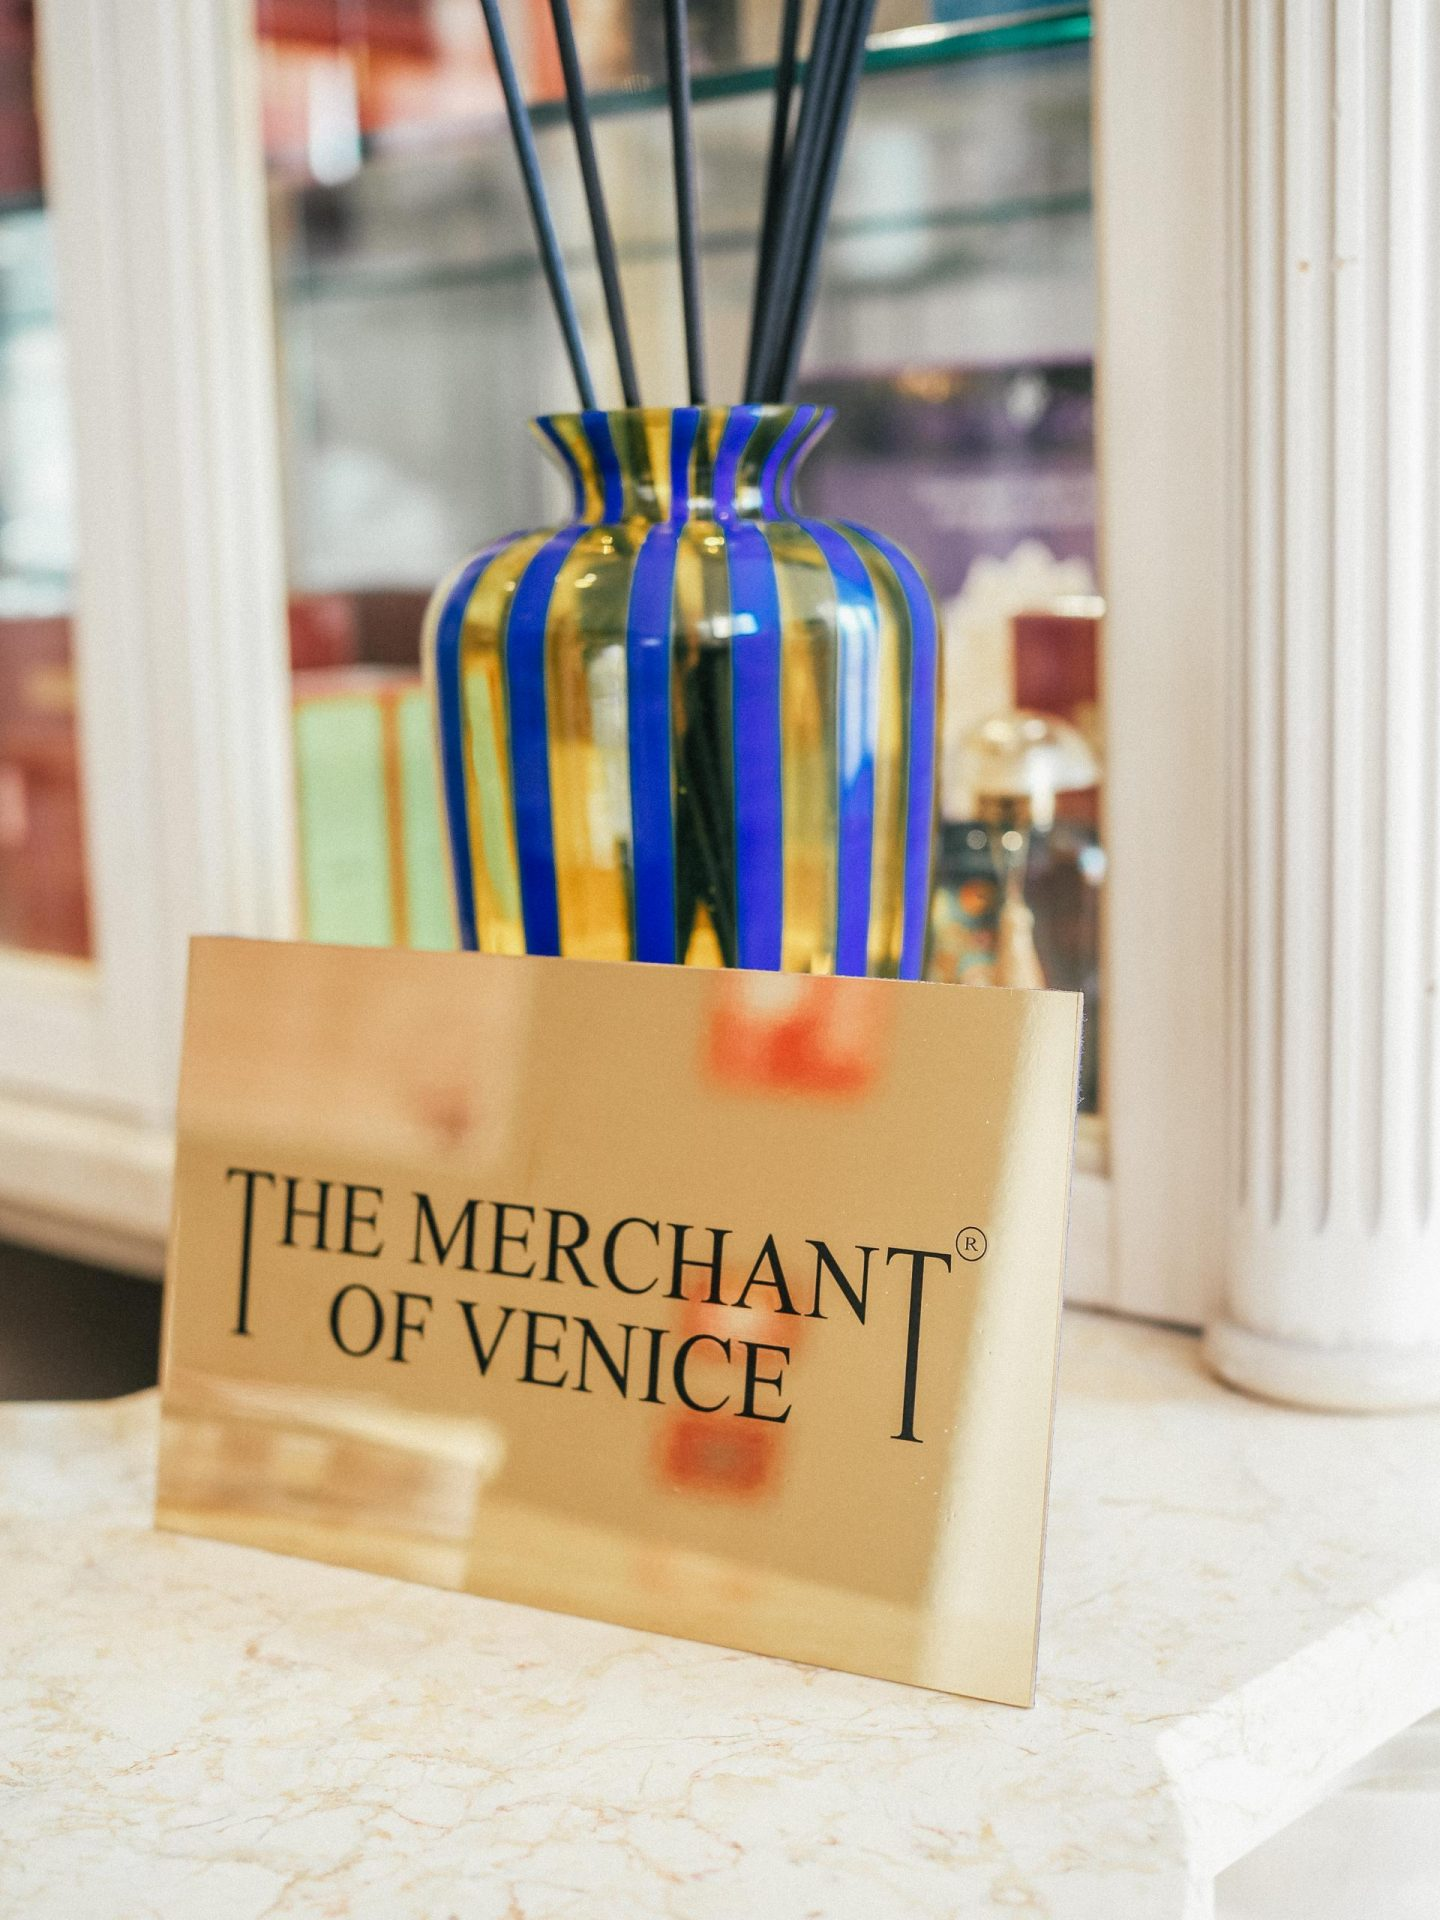 24K Gold Facial with The Merchant of Venice